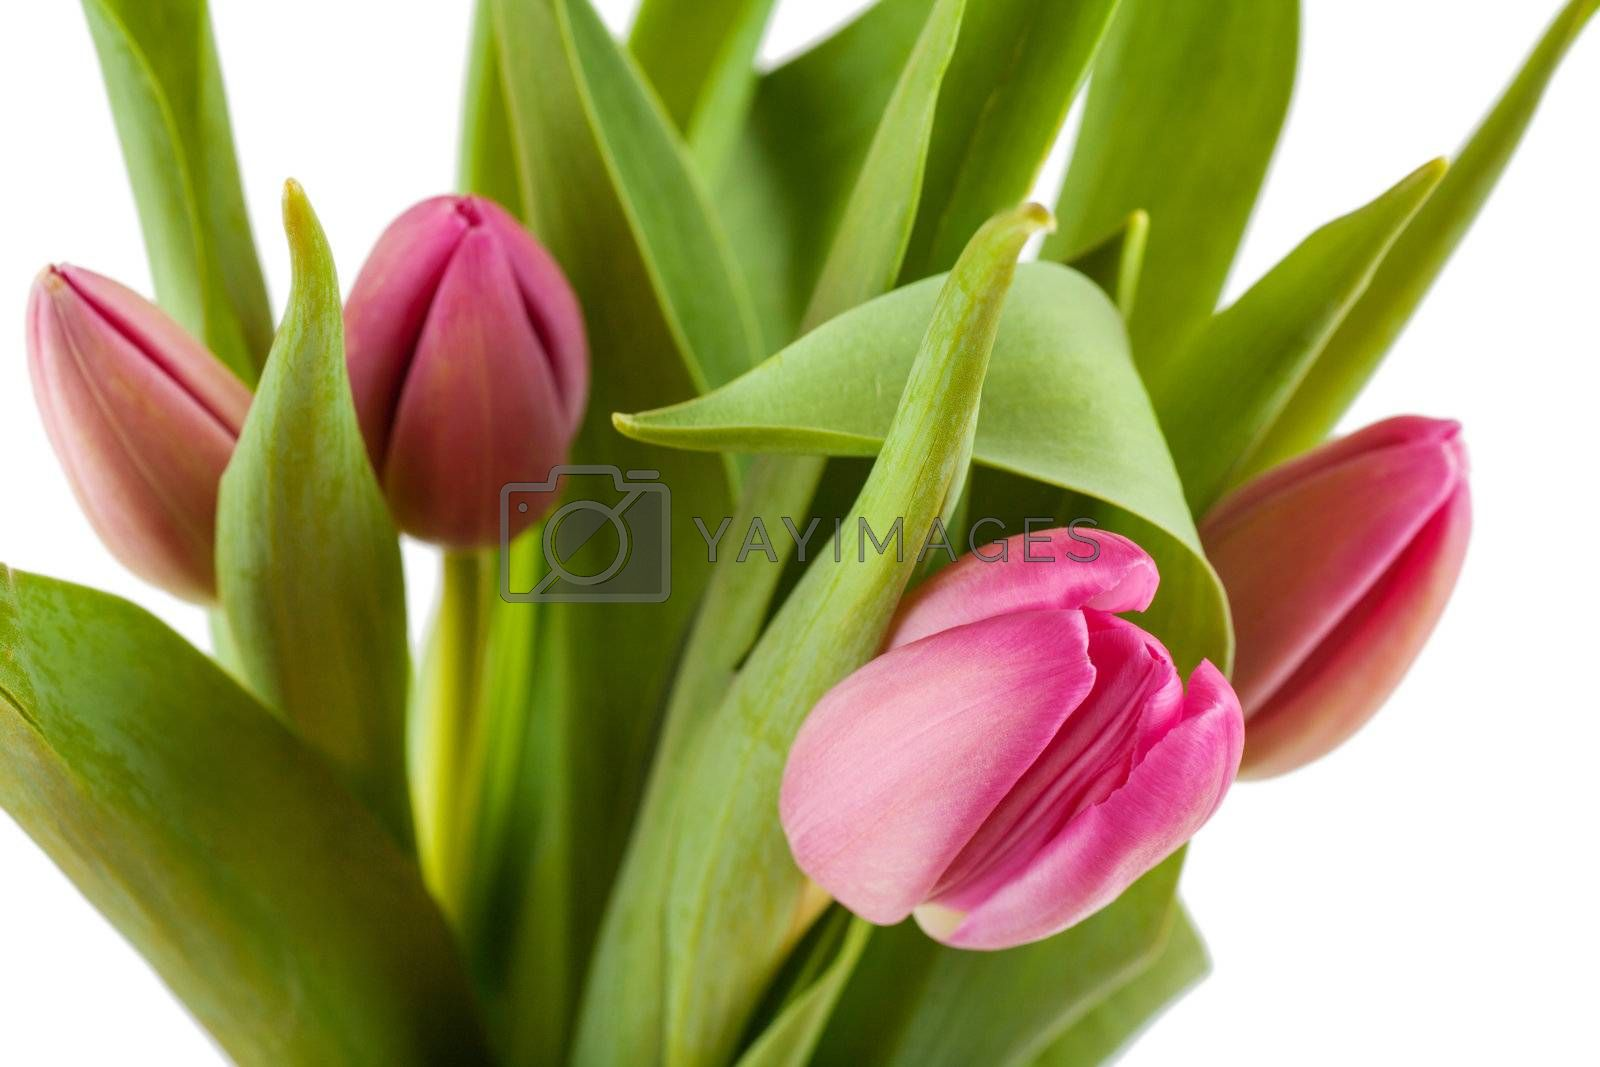 Royalty free image of Tulips by AGorohov